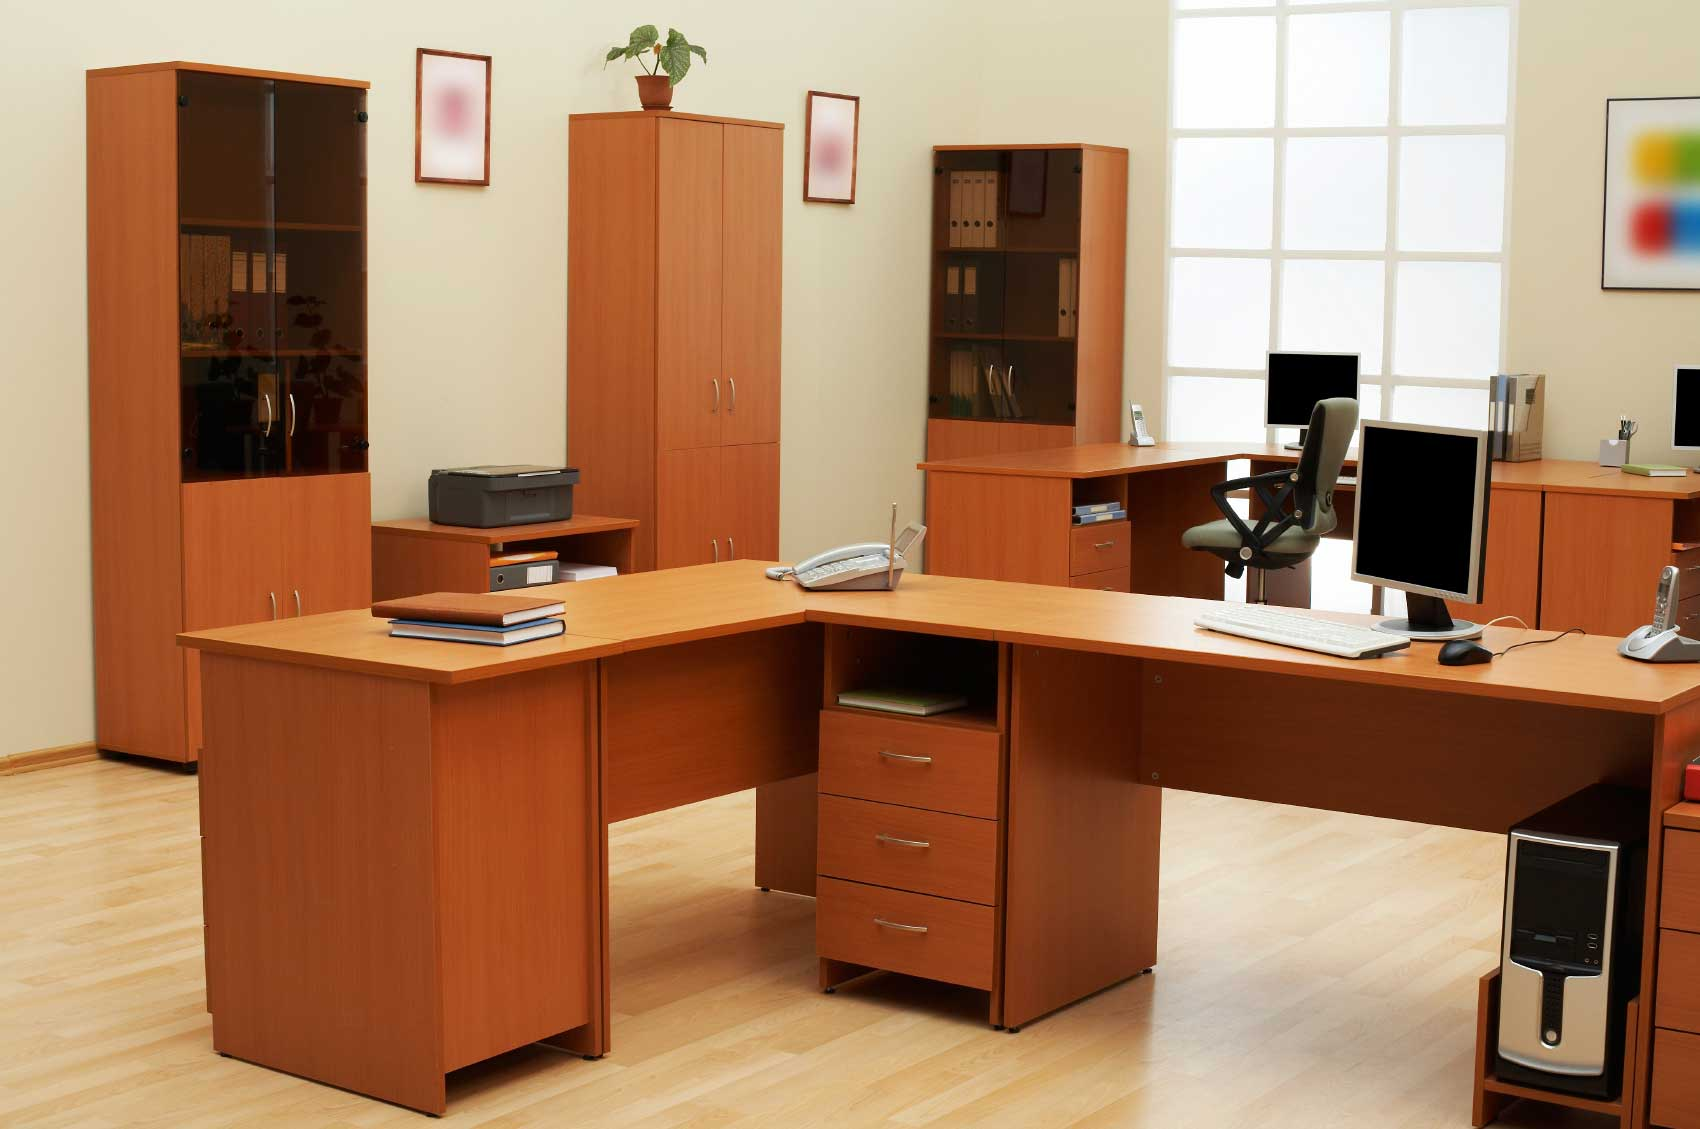 Environmentally Friendly Filing Cabinet Desk Storage